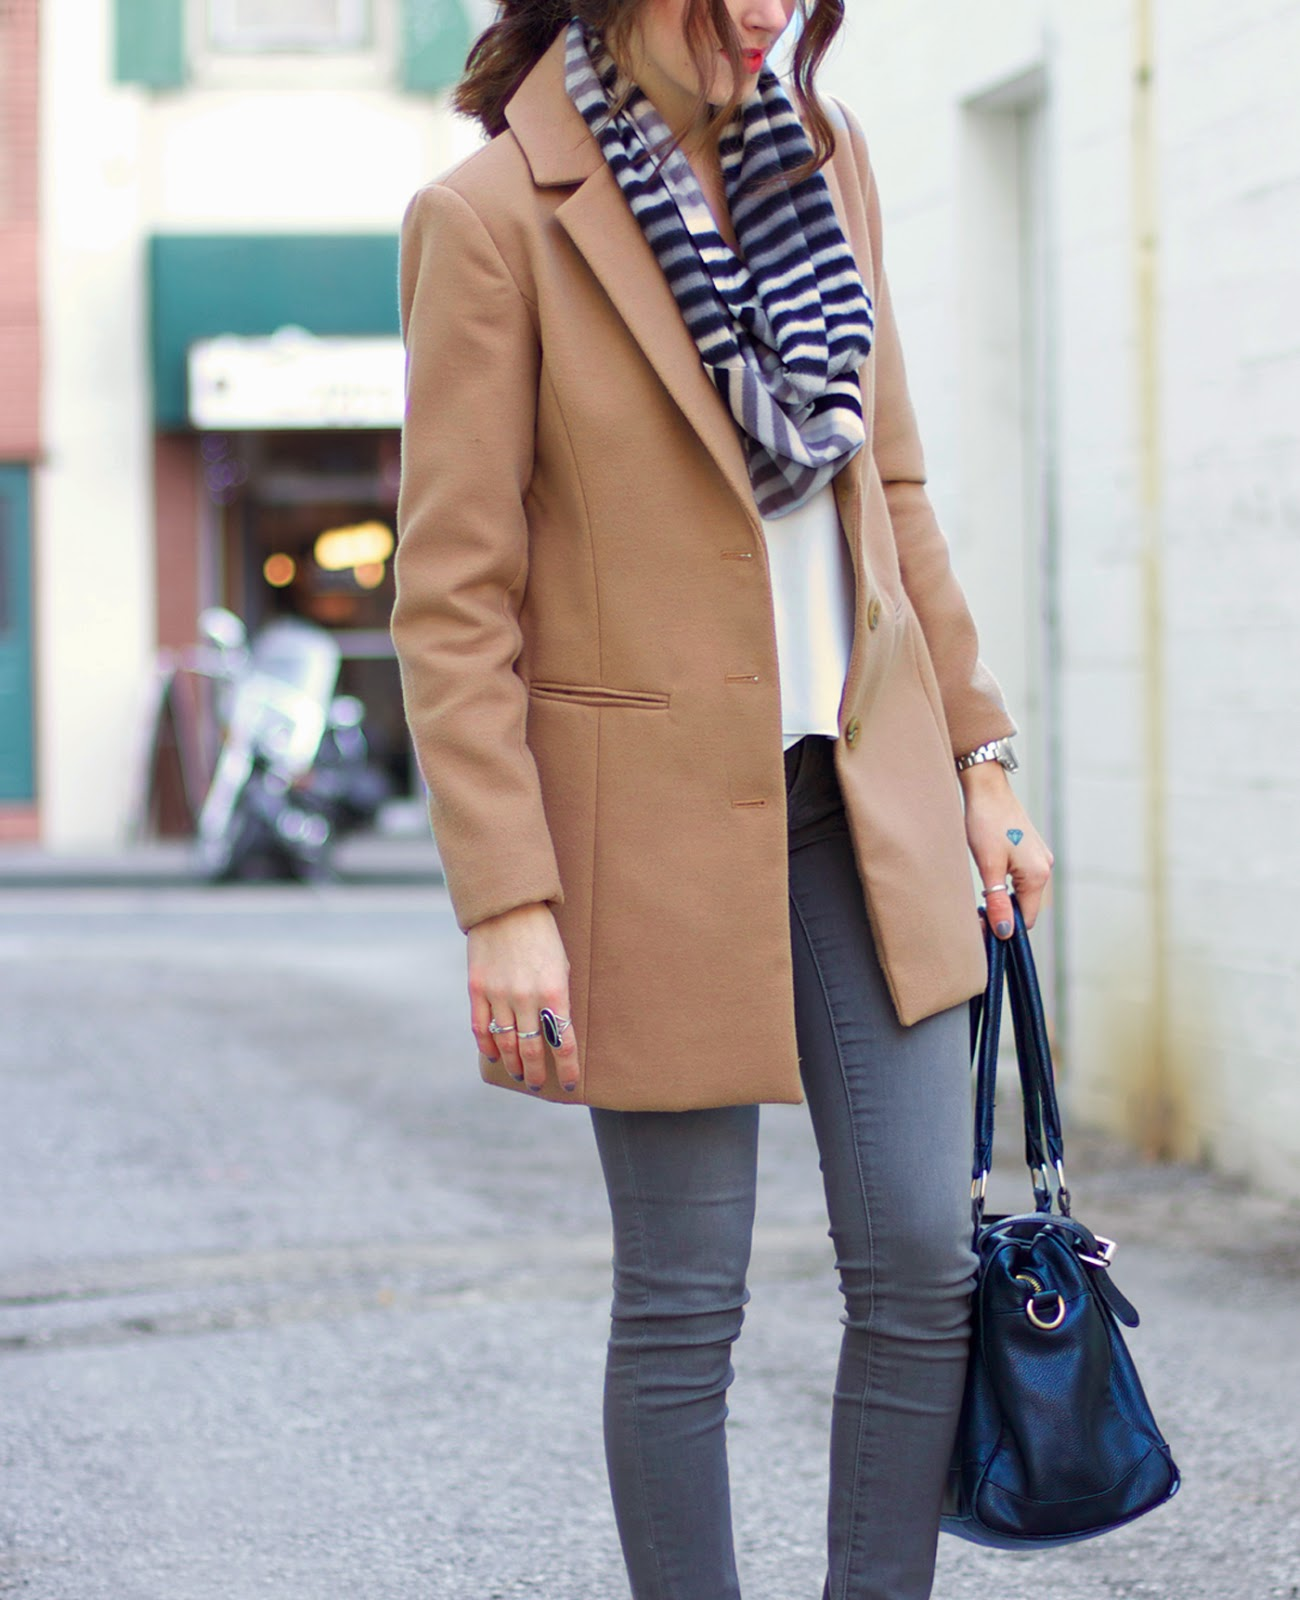 grey-jeans-tan-coat-striped-scarf